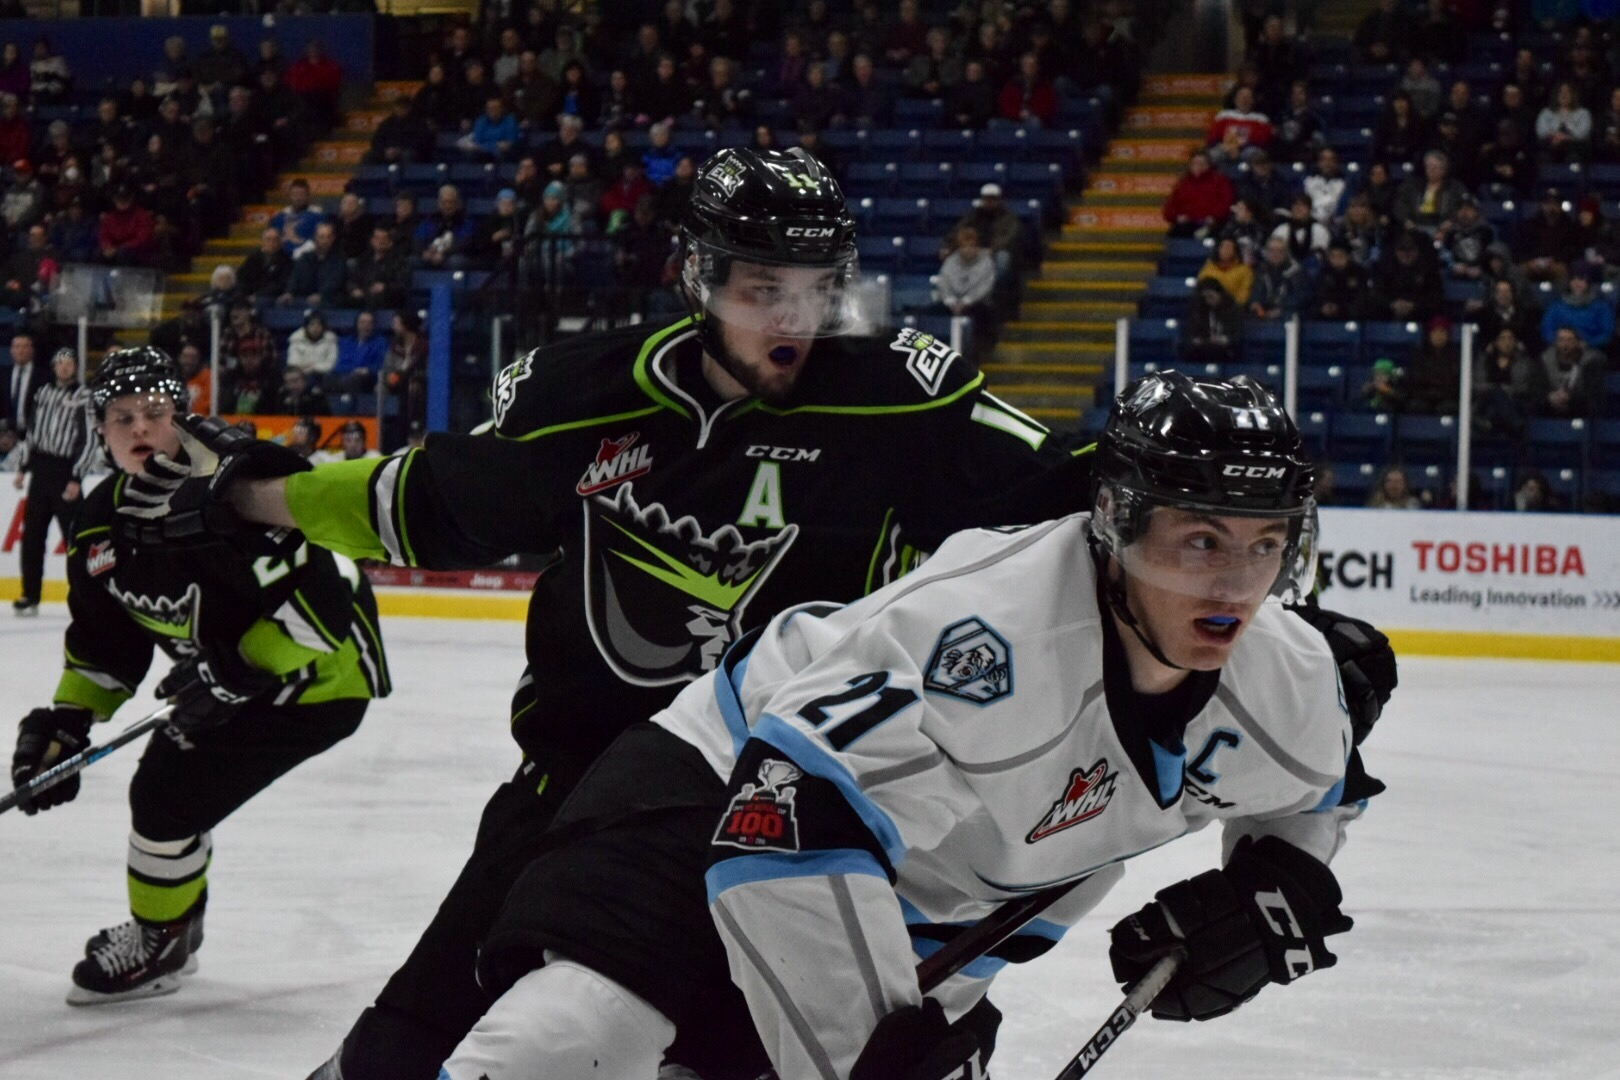 WHL: ICE struggle to score in 5-1 loss to Edmonton